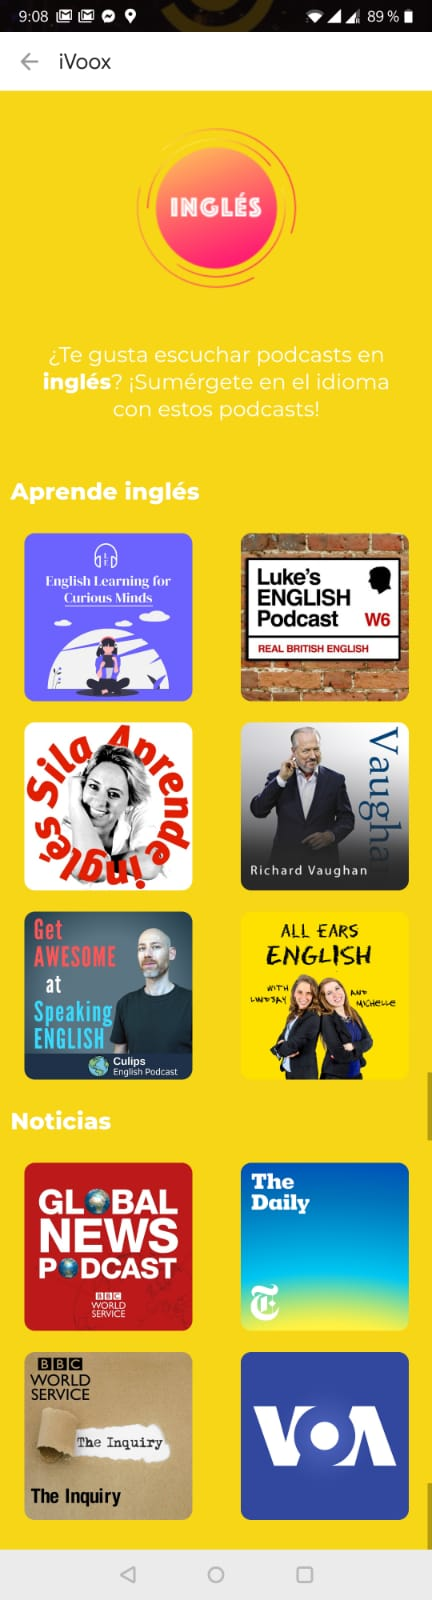 Number 1 podcast for English Learning